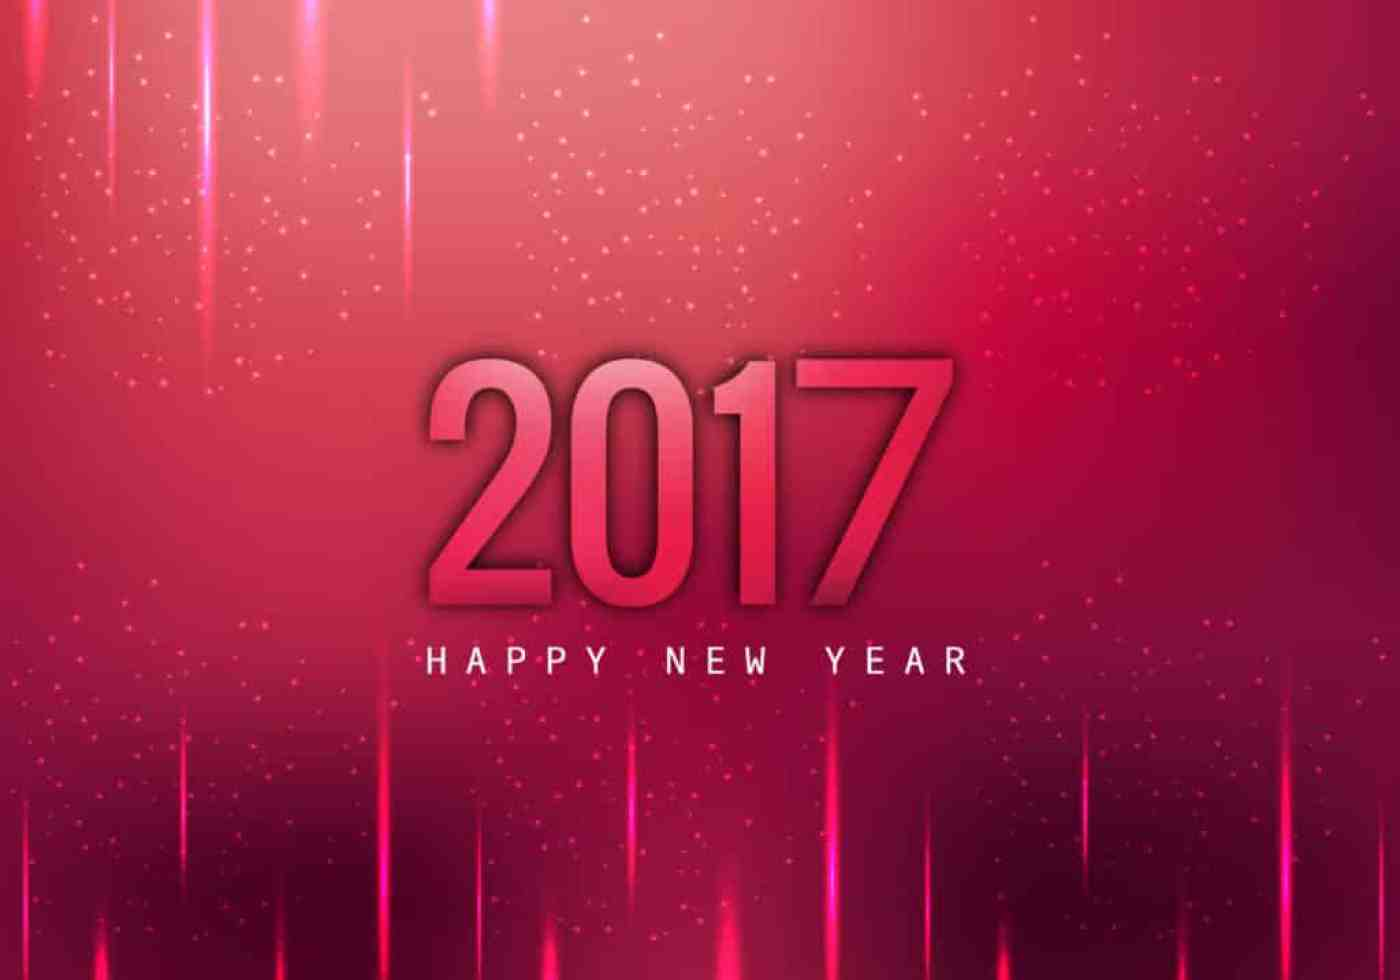 Happy New Year 2017 with glowing red background